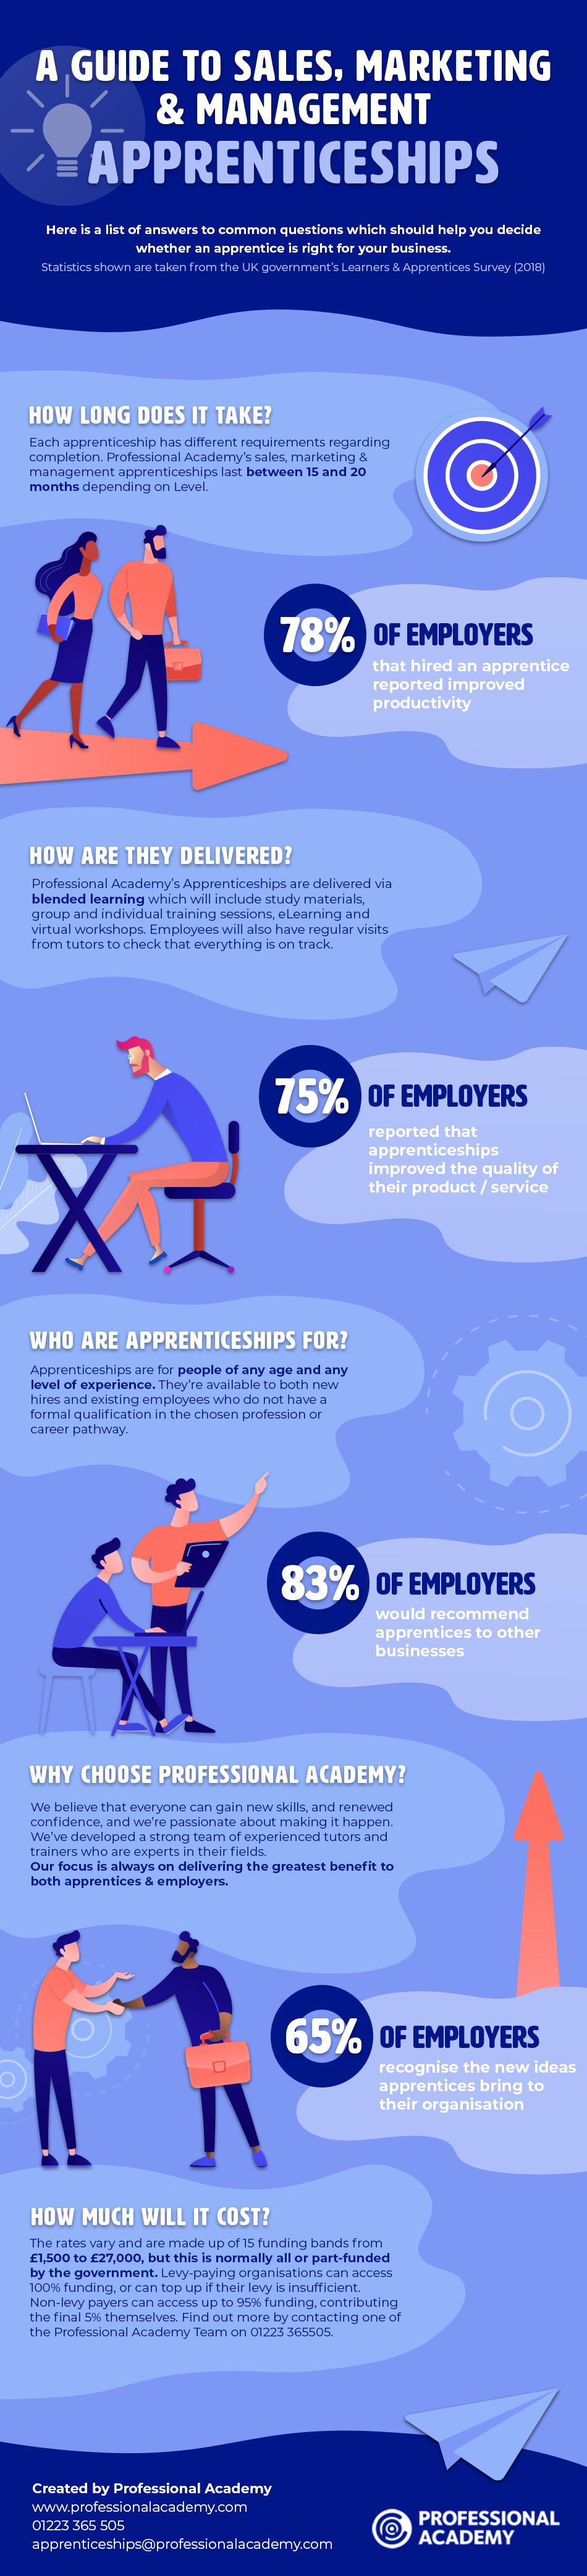 A guide to sales, marketing, and management apprenticeships